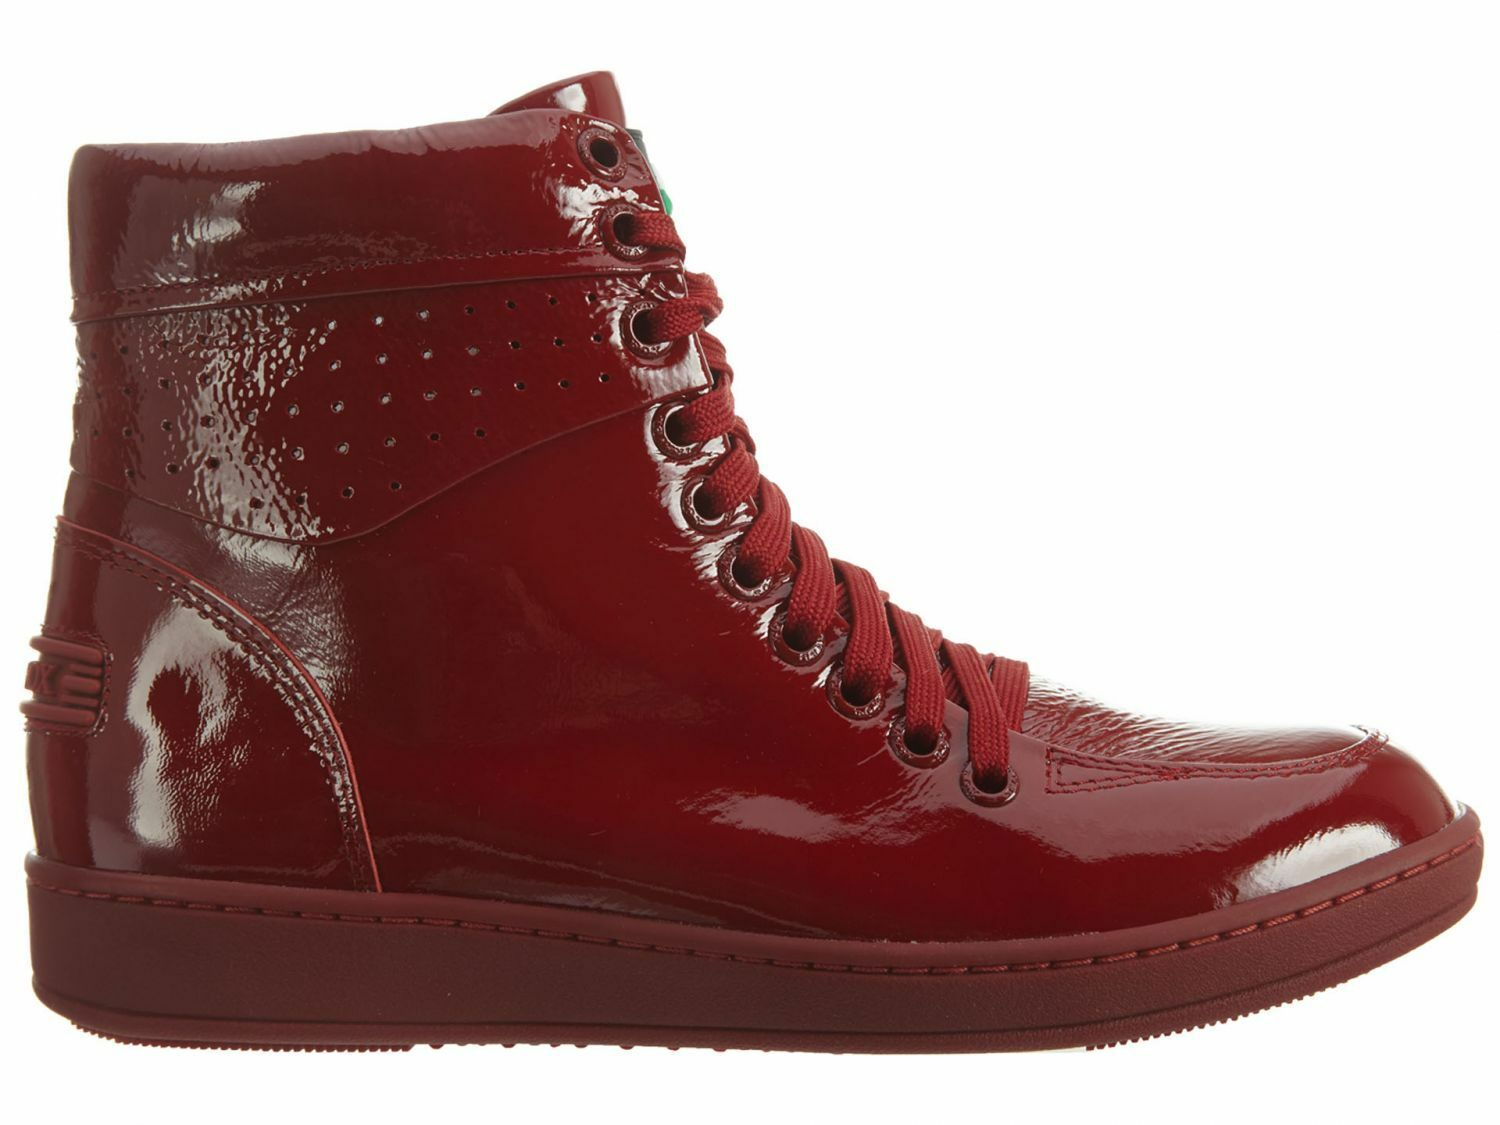 Travel Fox Bootie Womens 916301-444 Burgundy Nappa Leather shoes Size 7 - 37